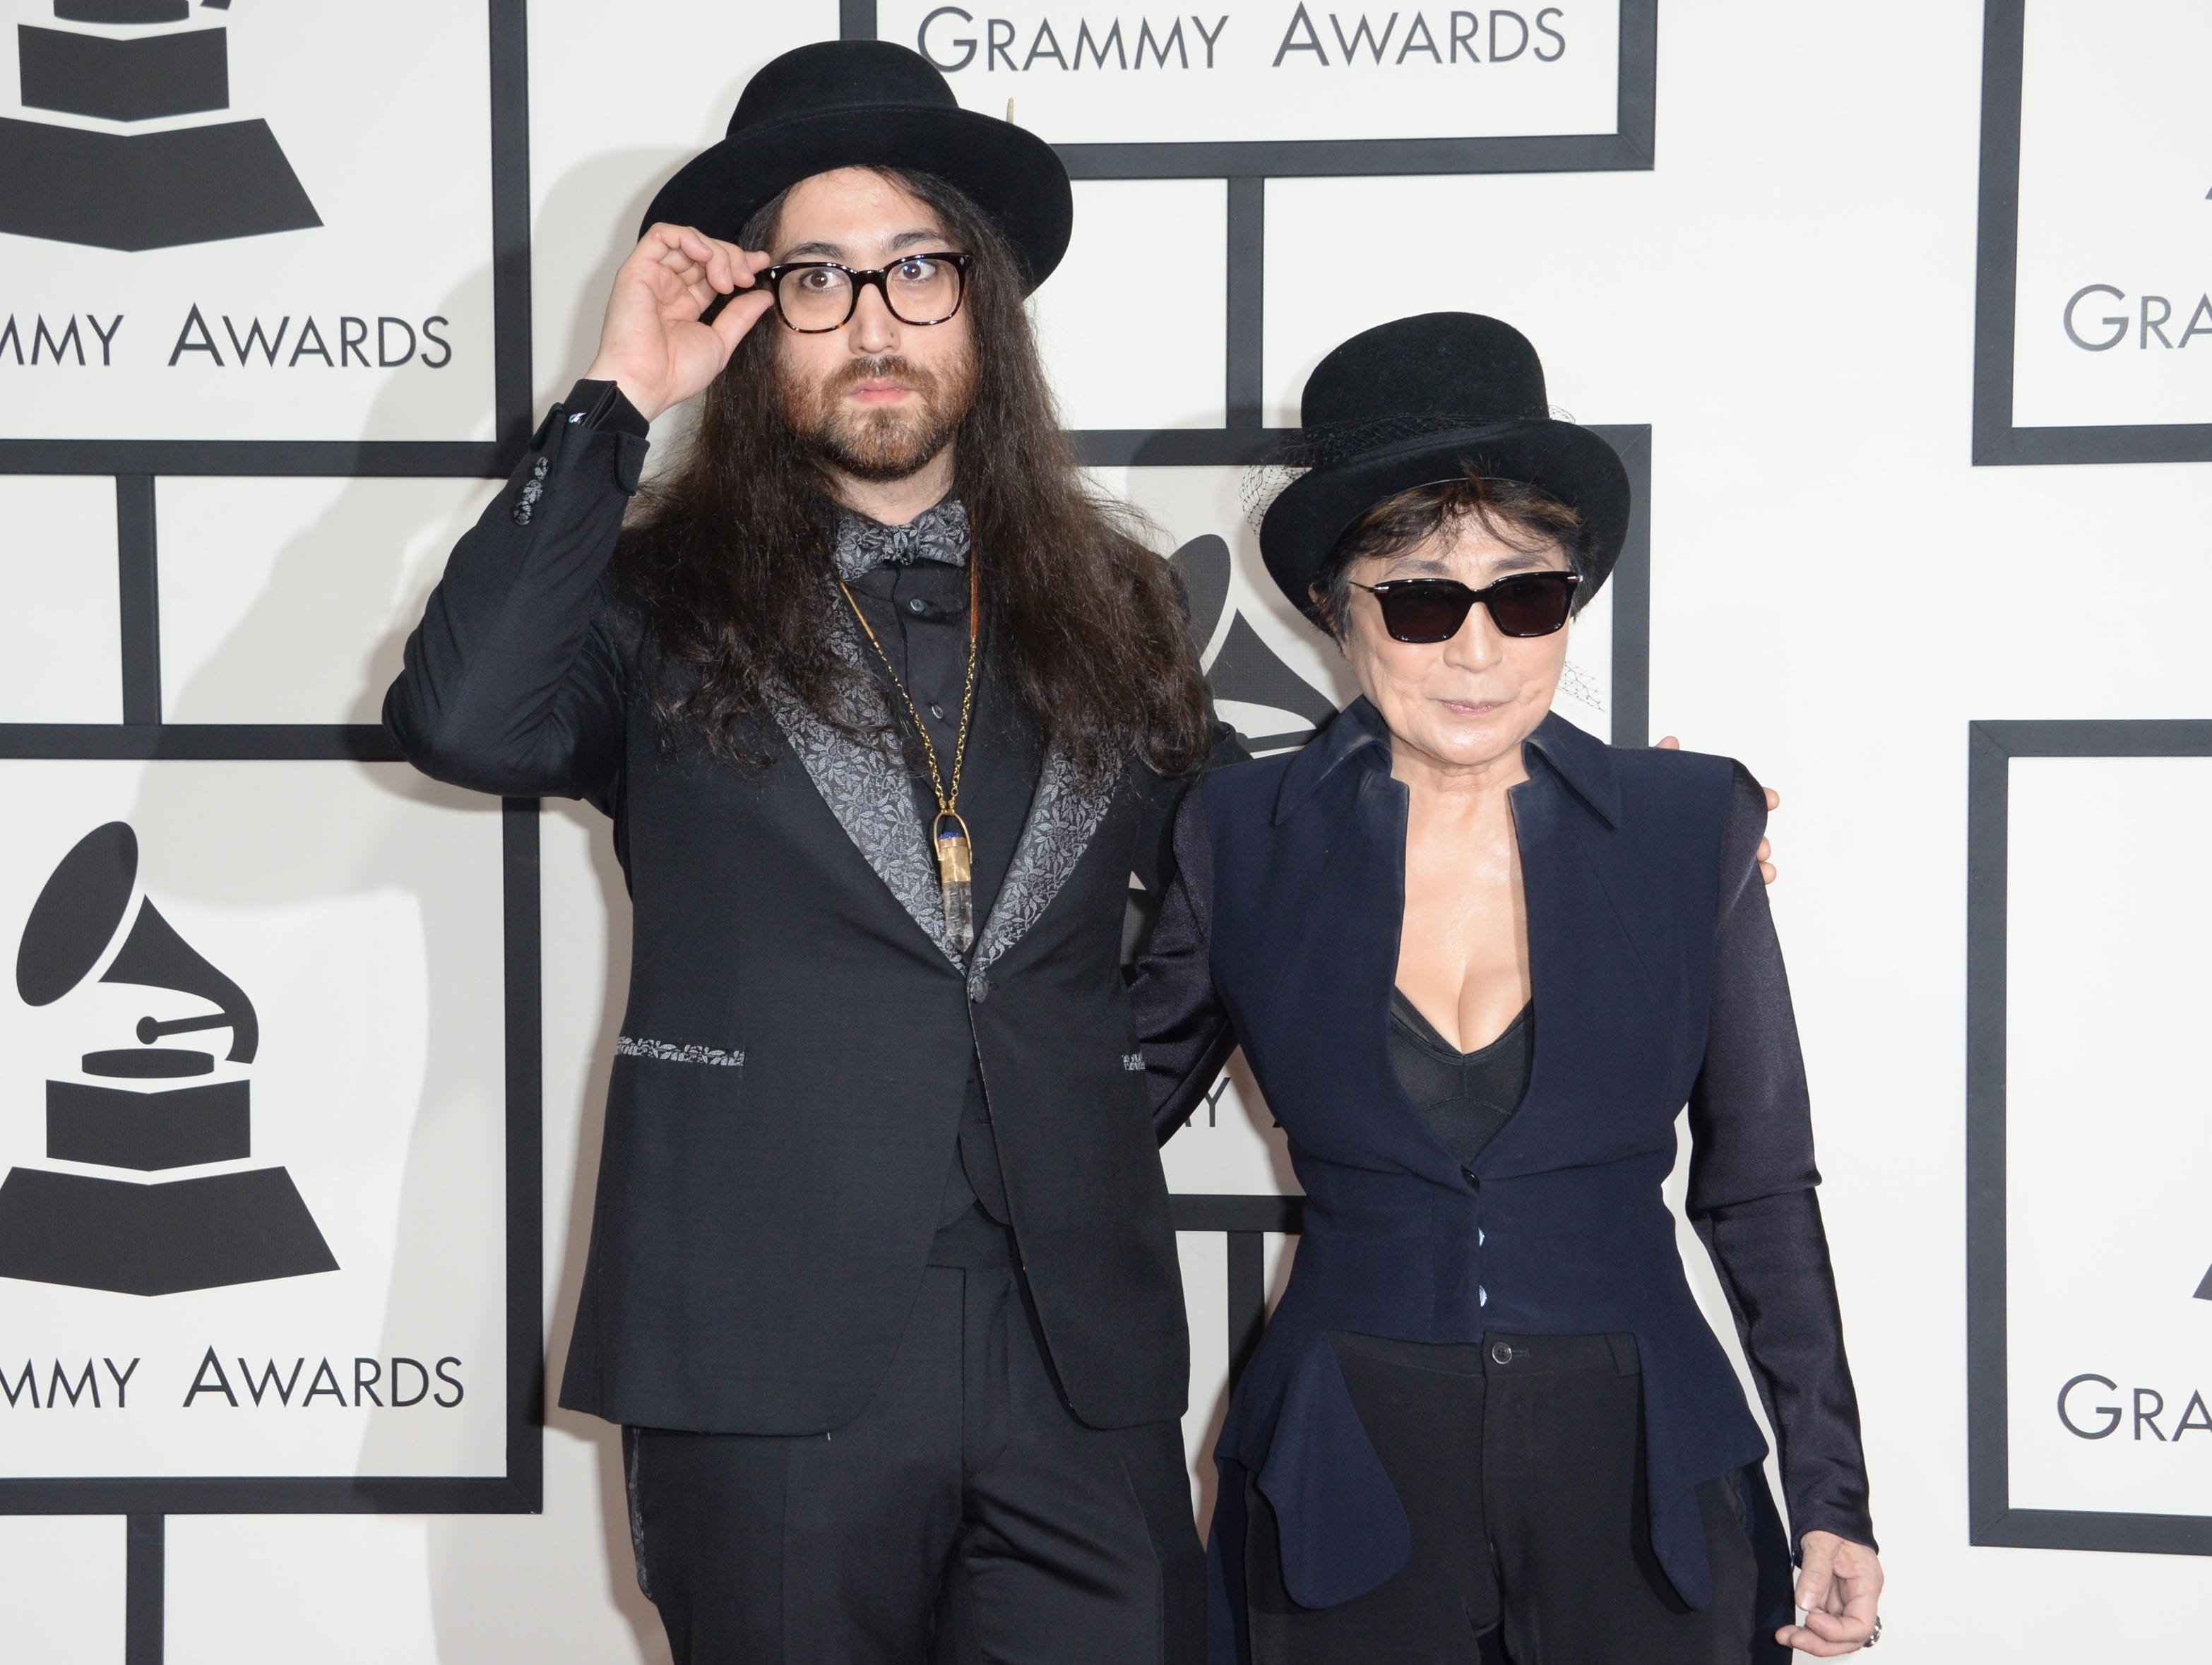 Yoko Ono poses with son Sean Lennon on the red carpet  during the 56th Grammy Awards at the Staples Center in Los Angeles, California, January 26, 2014.